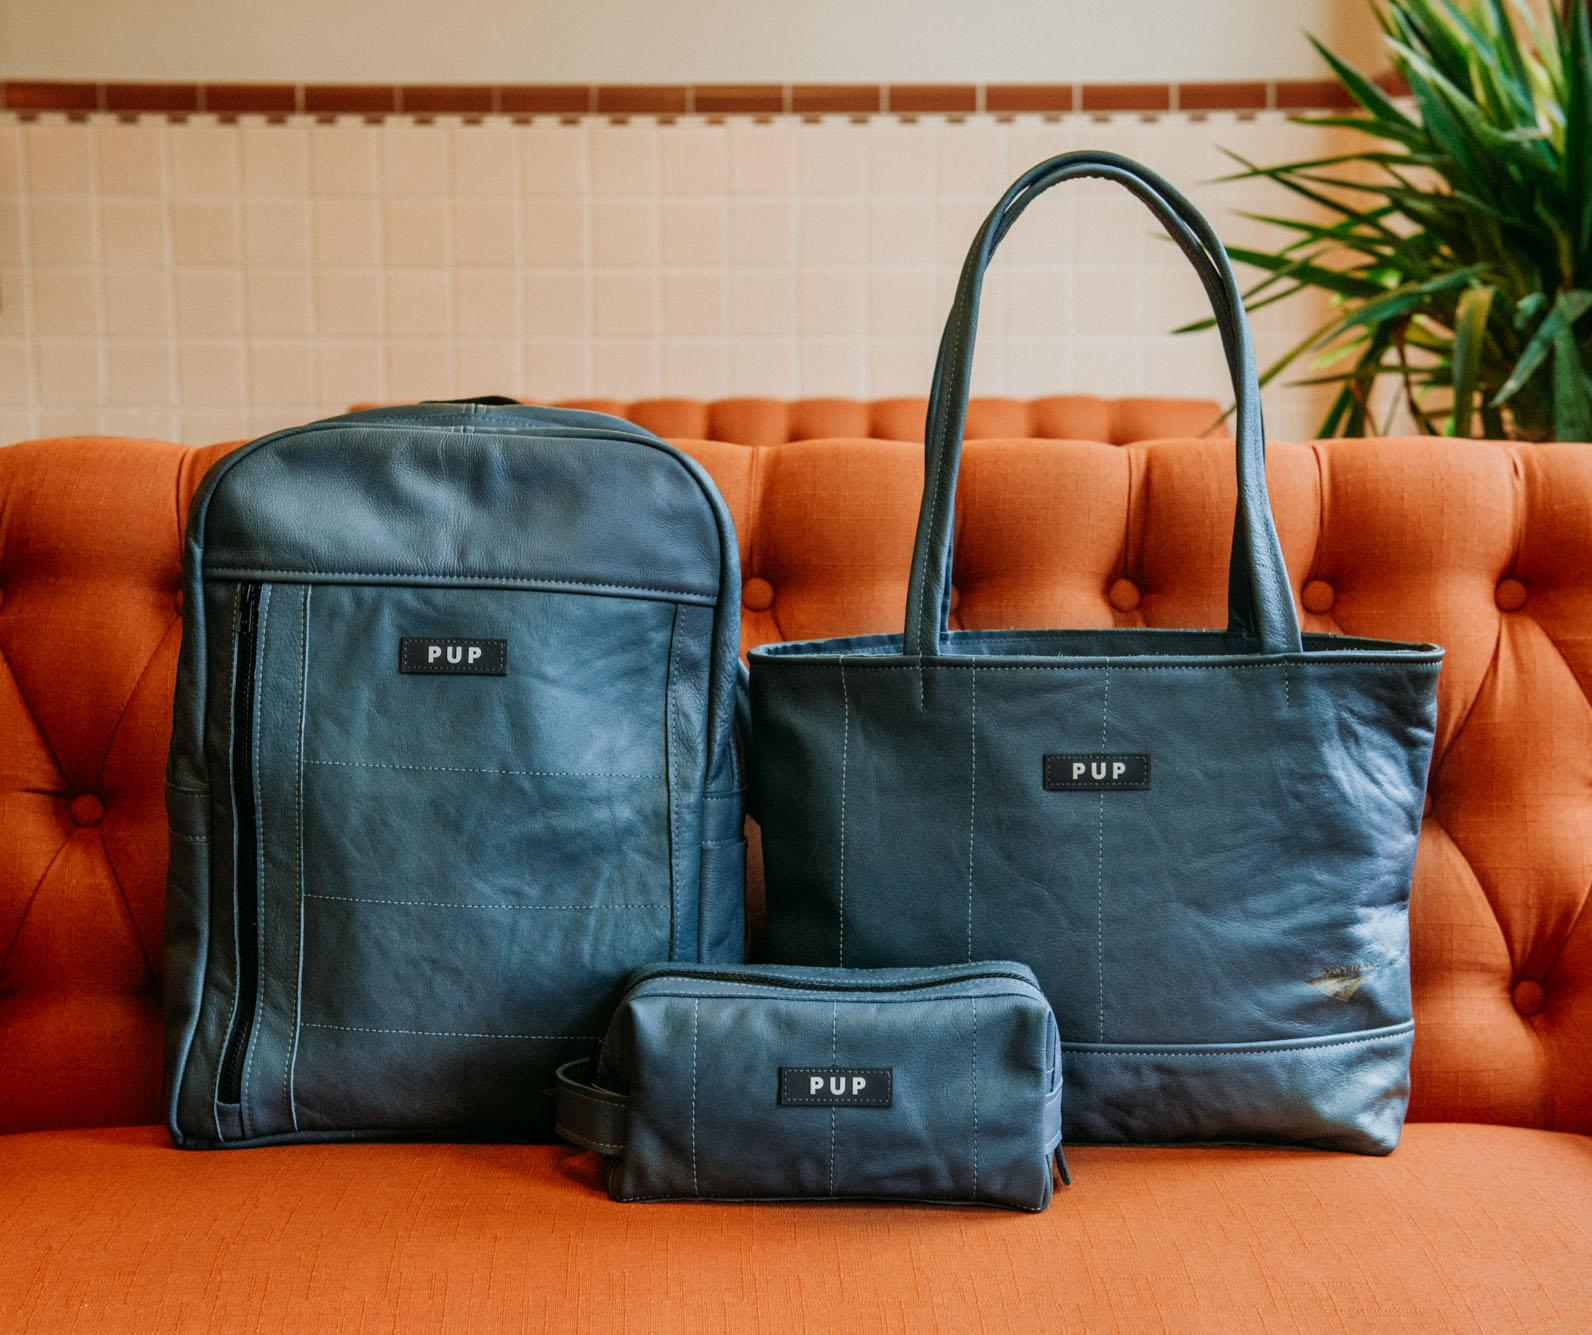 Amtrak has just announced a partnership with People for Urban Progress (PUP), to turn the leather seat covers from 20 Amtrak Acela Express train seats into luxury handbags. (Image: Courtesy Amtrak)